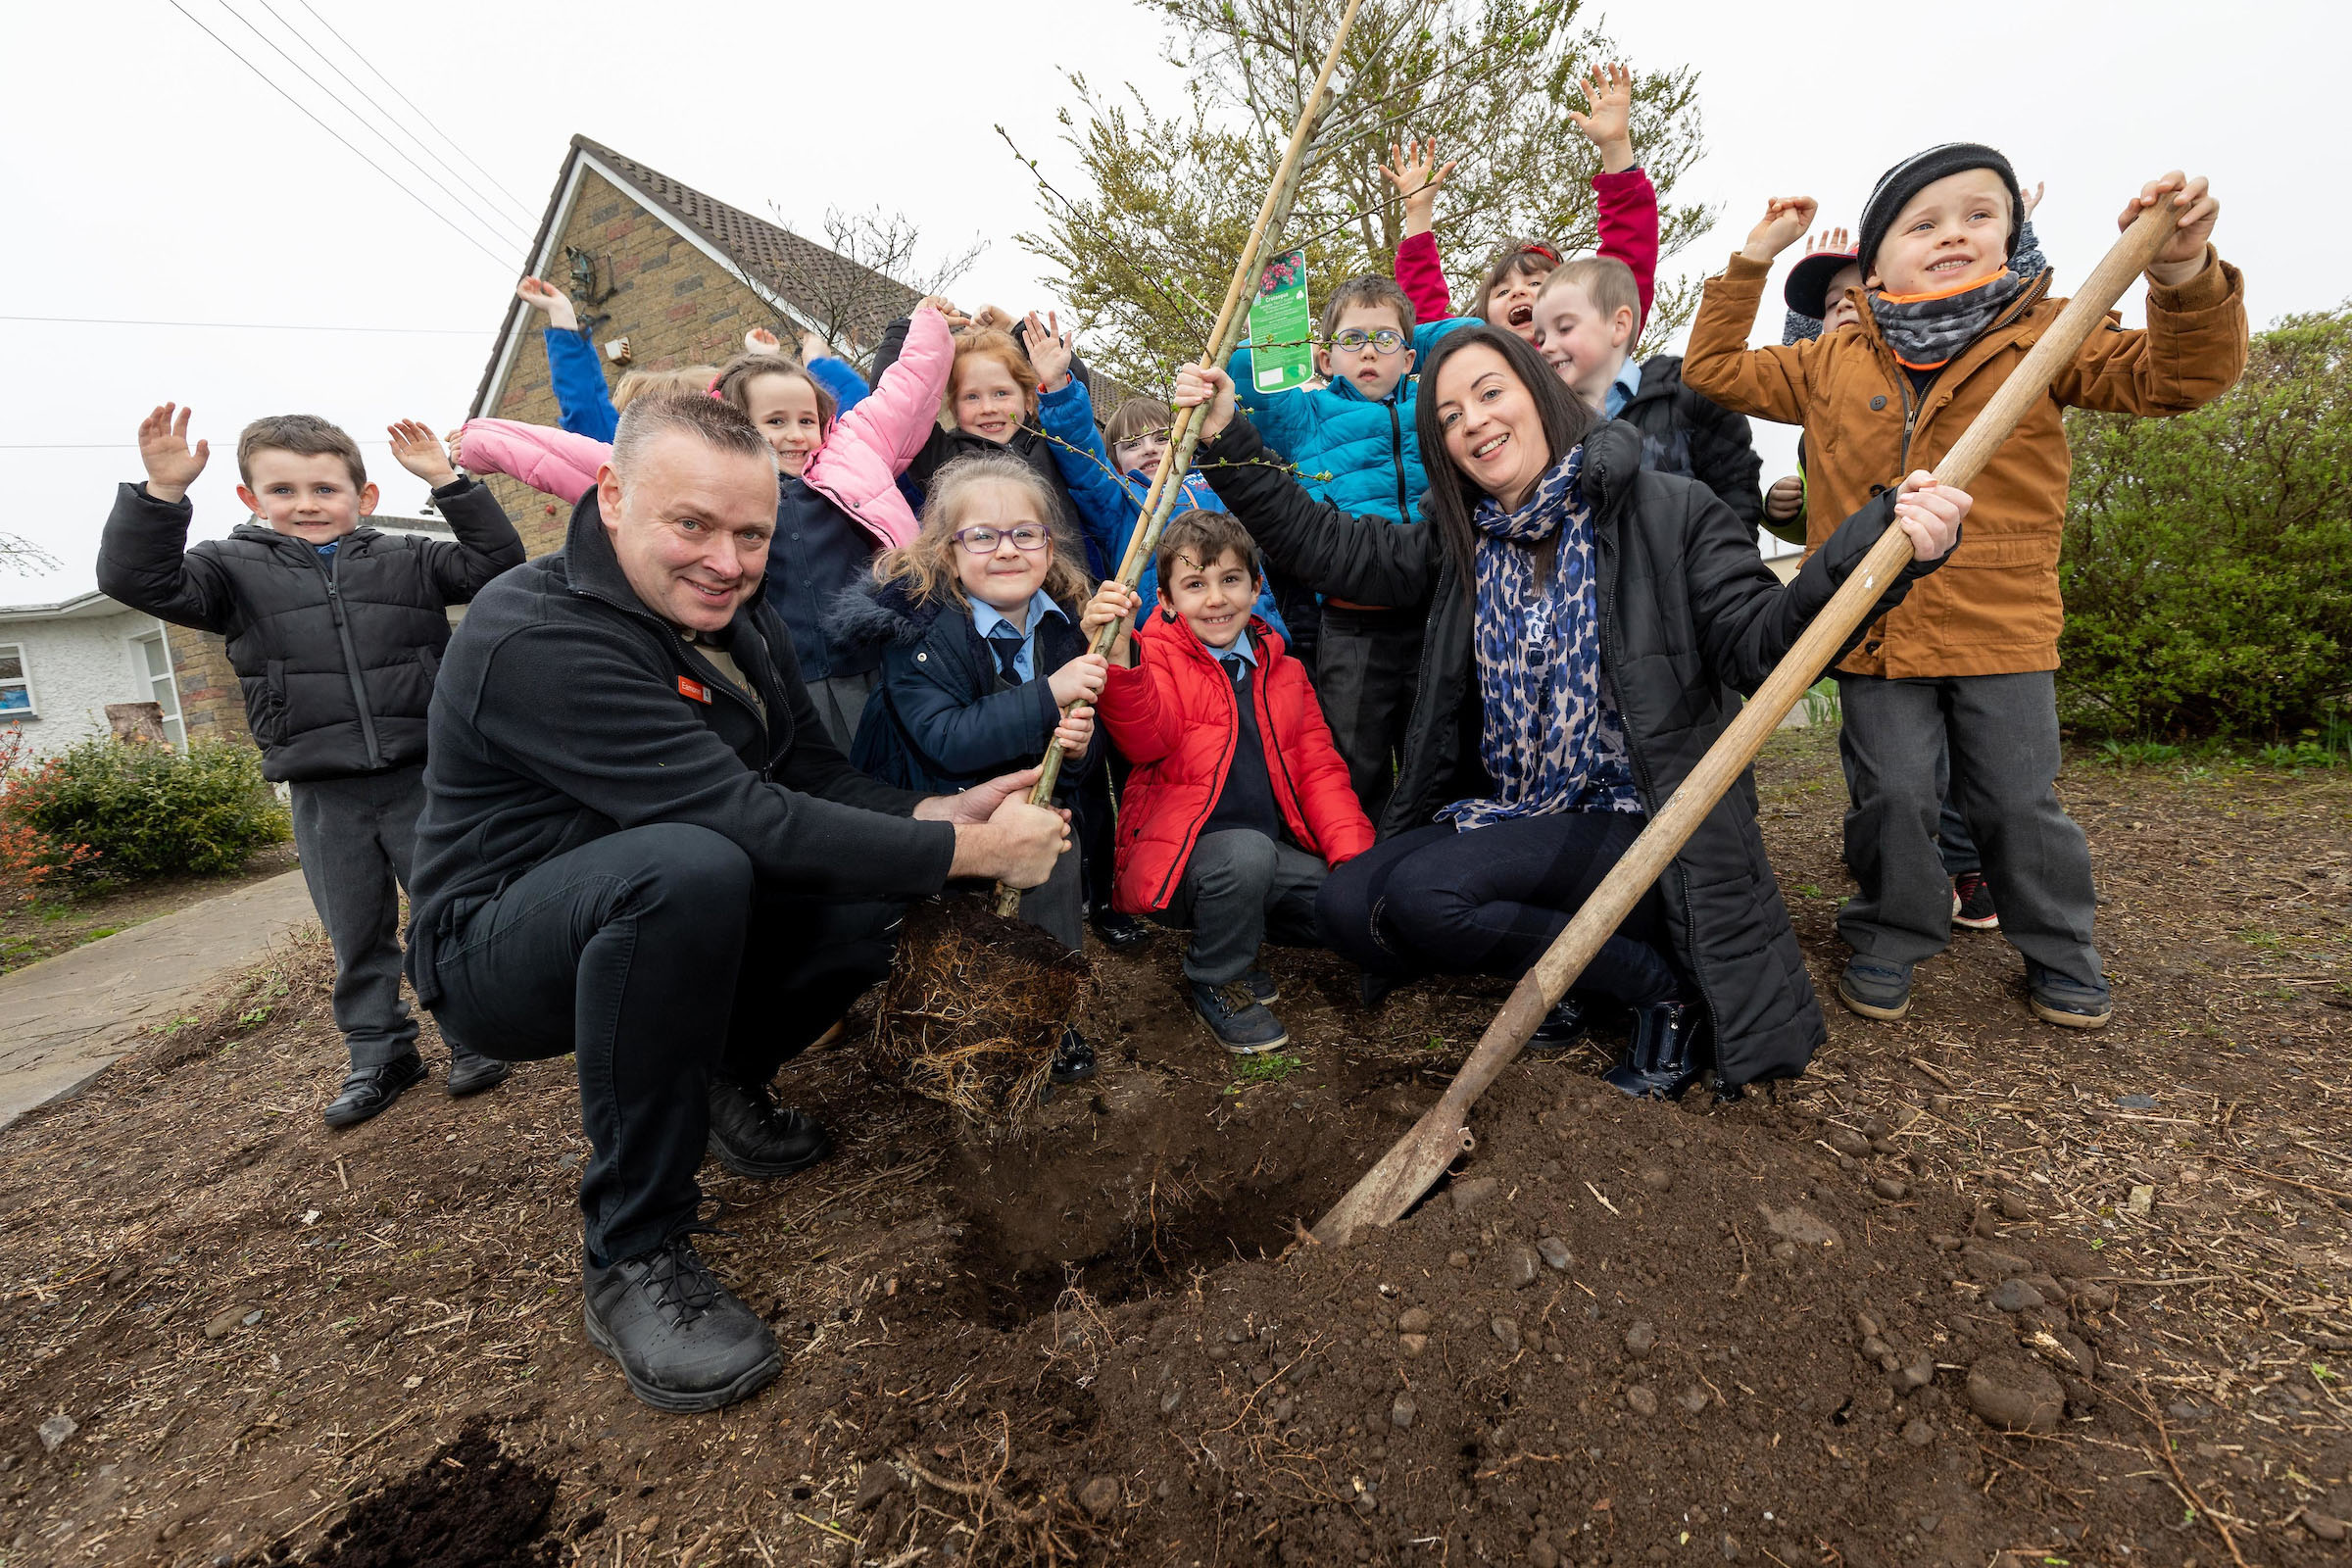 "Eamonn Wall of Arboretum Garden Centre in Carlow planting the first tree at Leighlinbridge National School to launch the Arboretum ""We only have one planet' campaign with Evelyn Gaynor aged 6 (glasses), Frankie Doyle aged 6 (red jacket) and Sarah Moriarty (teacher) with pupils from the senior infants class.  for further information please contact Sarah Corr  01 6789888  O'Leary PR"